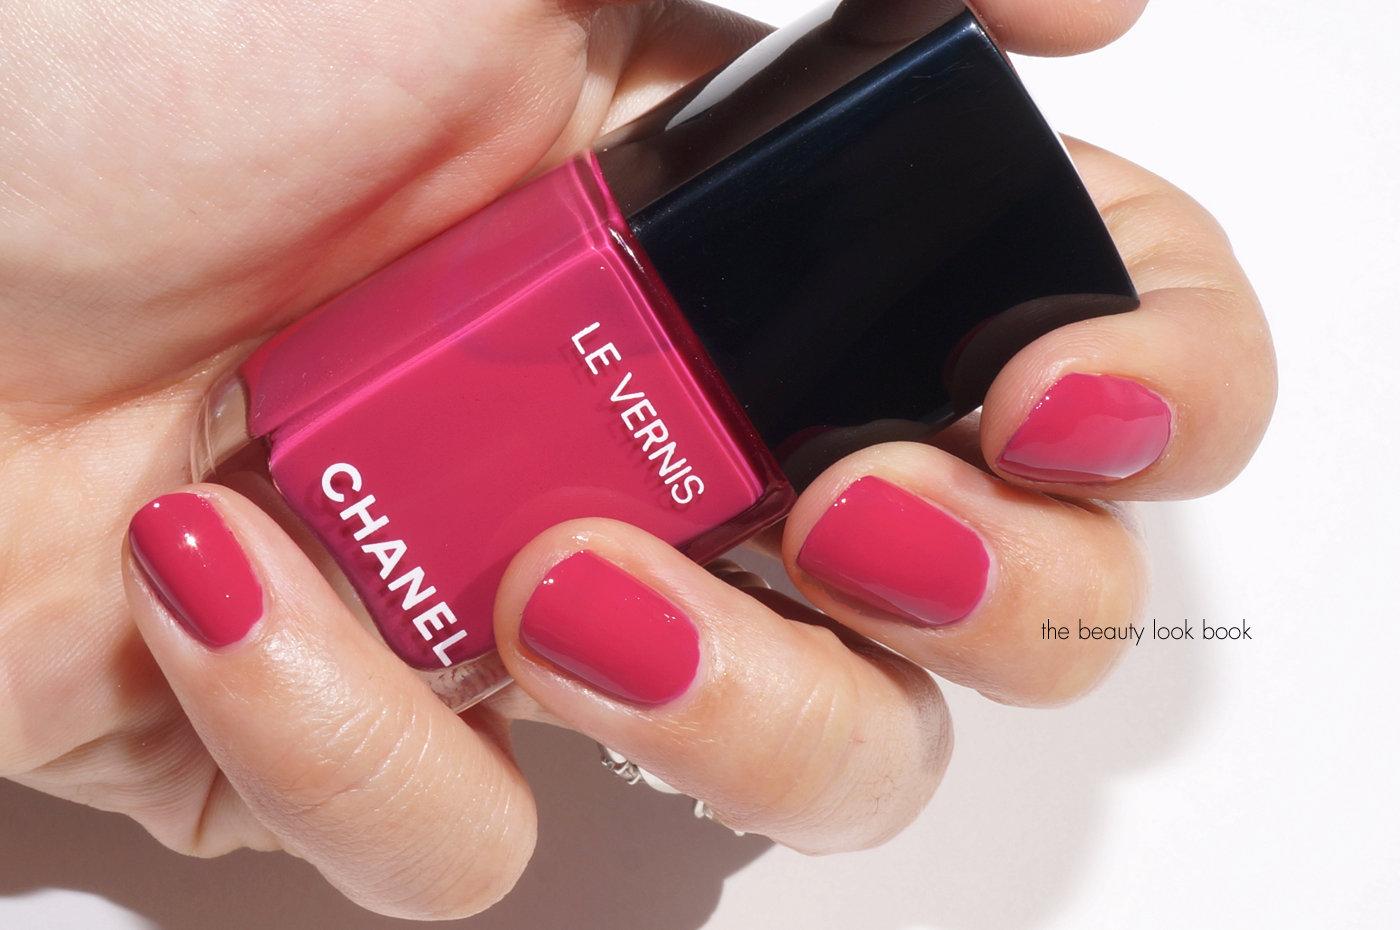 bd06b66ba20 Chanel Le Vernis Longwear Nail Color and Le Gel Coat Longwear Top Coat - New  Formulas